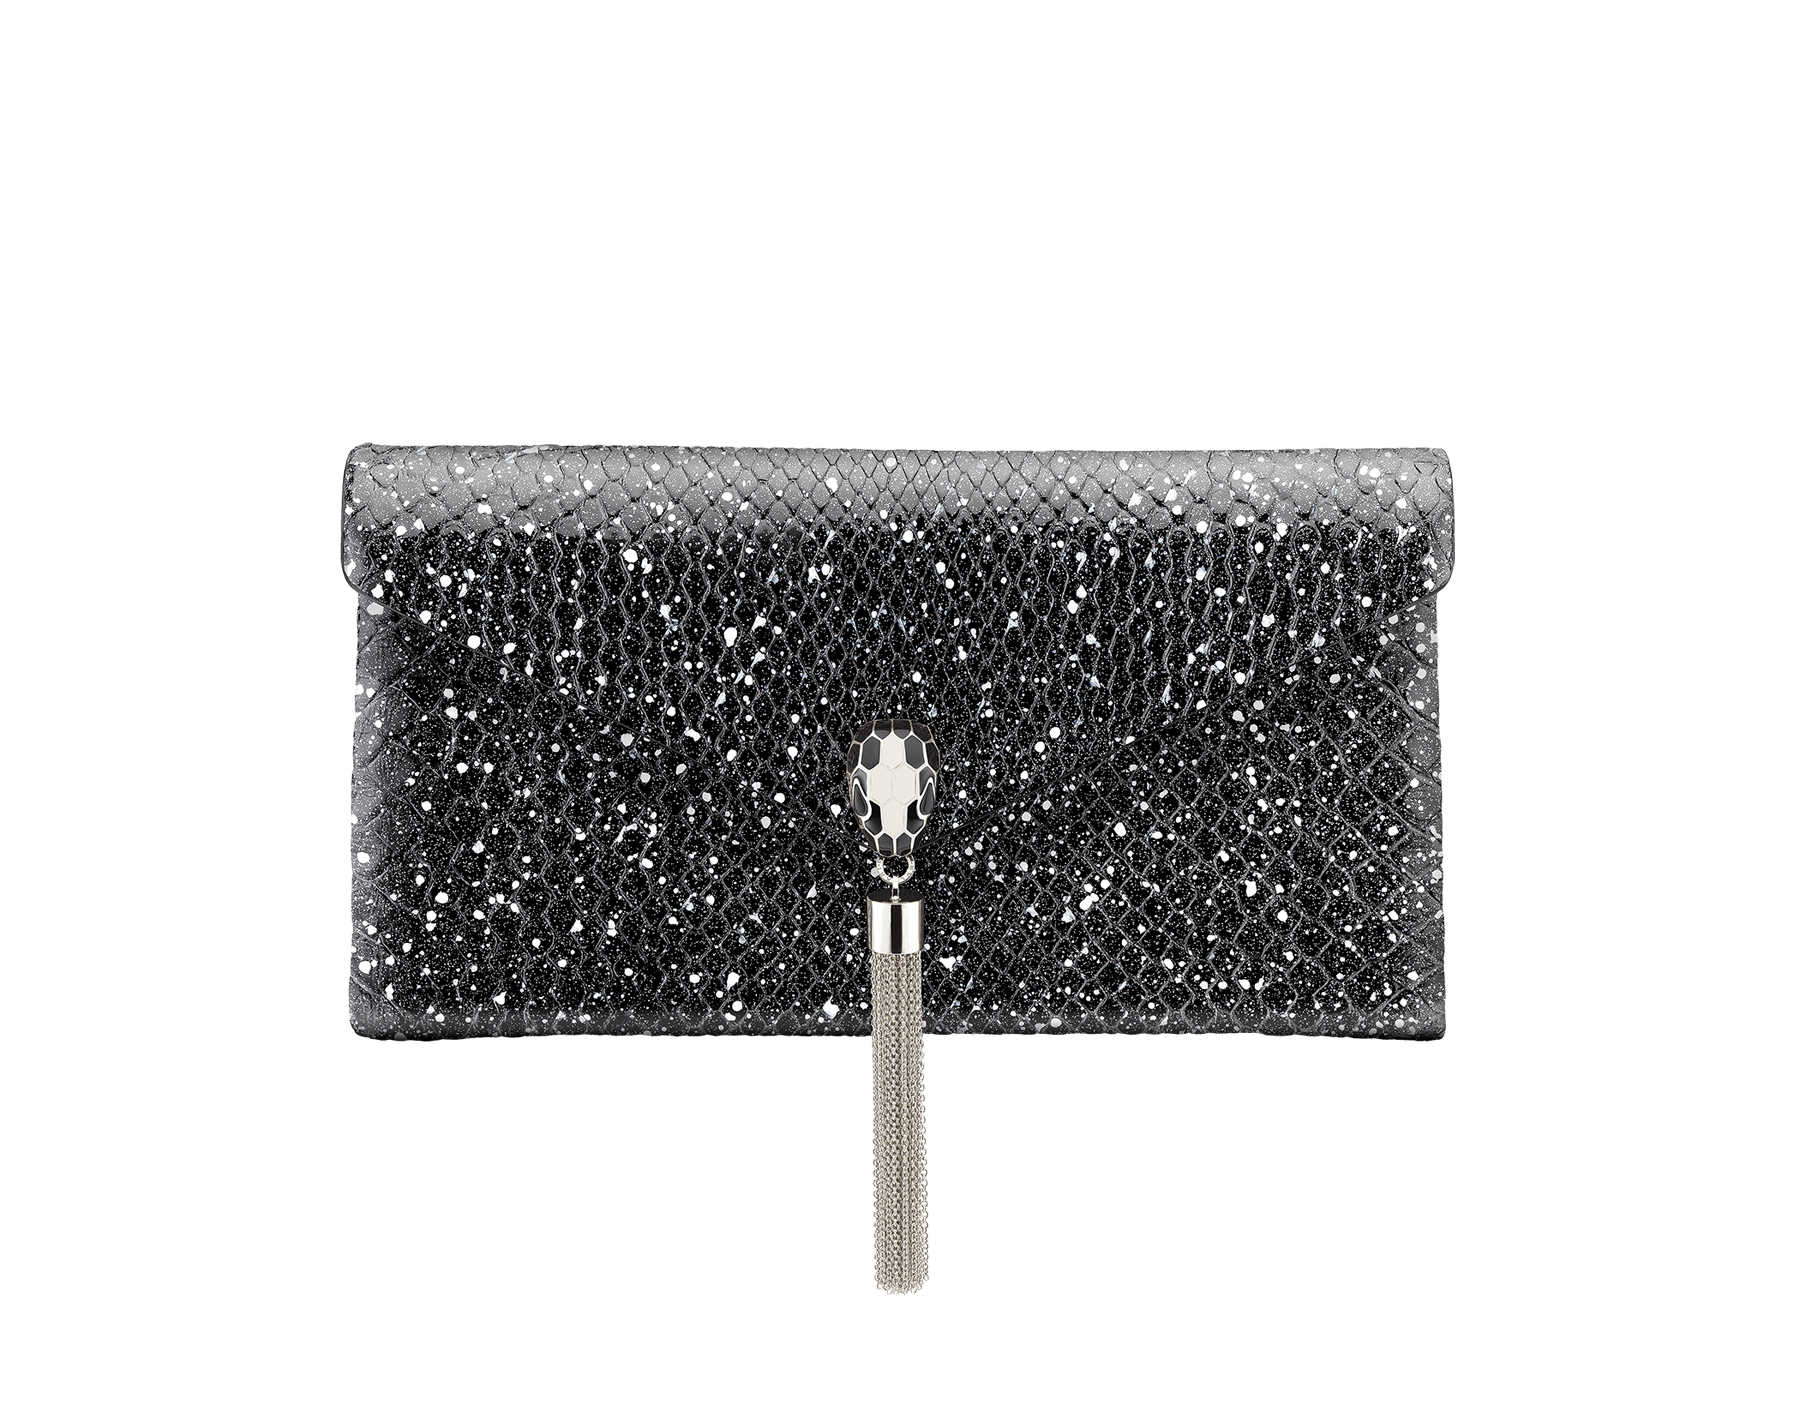 Serpenti evening clutch in black and white Cosmic python skin. Snakehead stud closure with tassel in palladium plated brass decorated with black and white enamel, and black onyx eyes. 288528 image 1